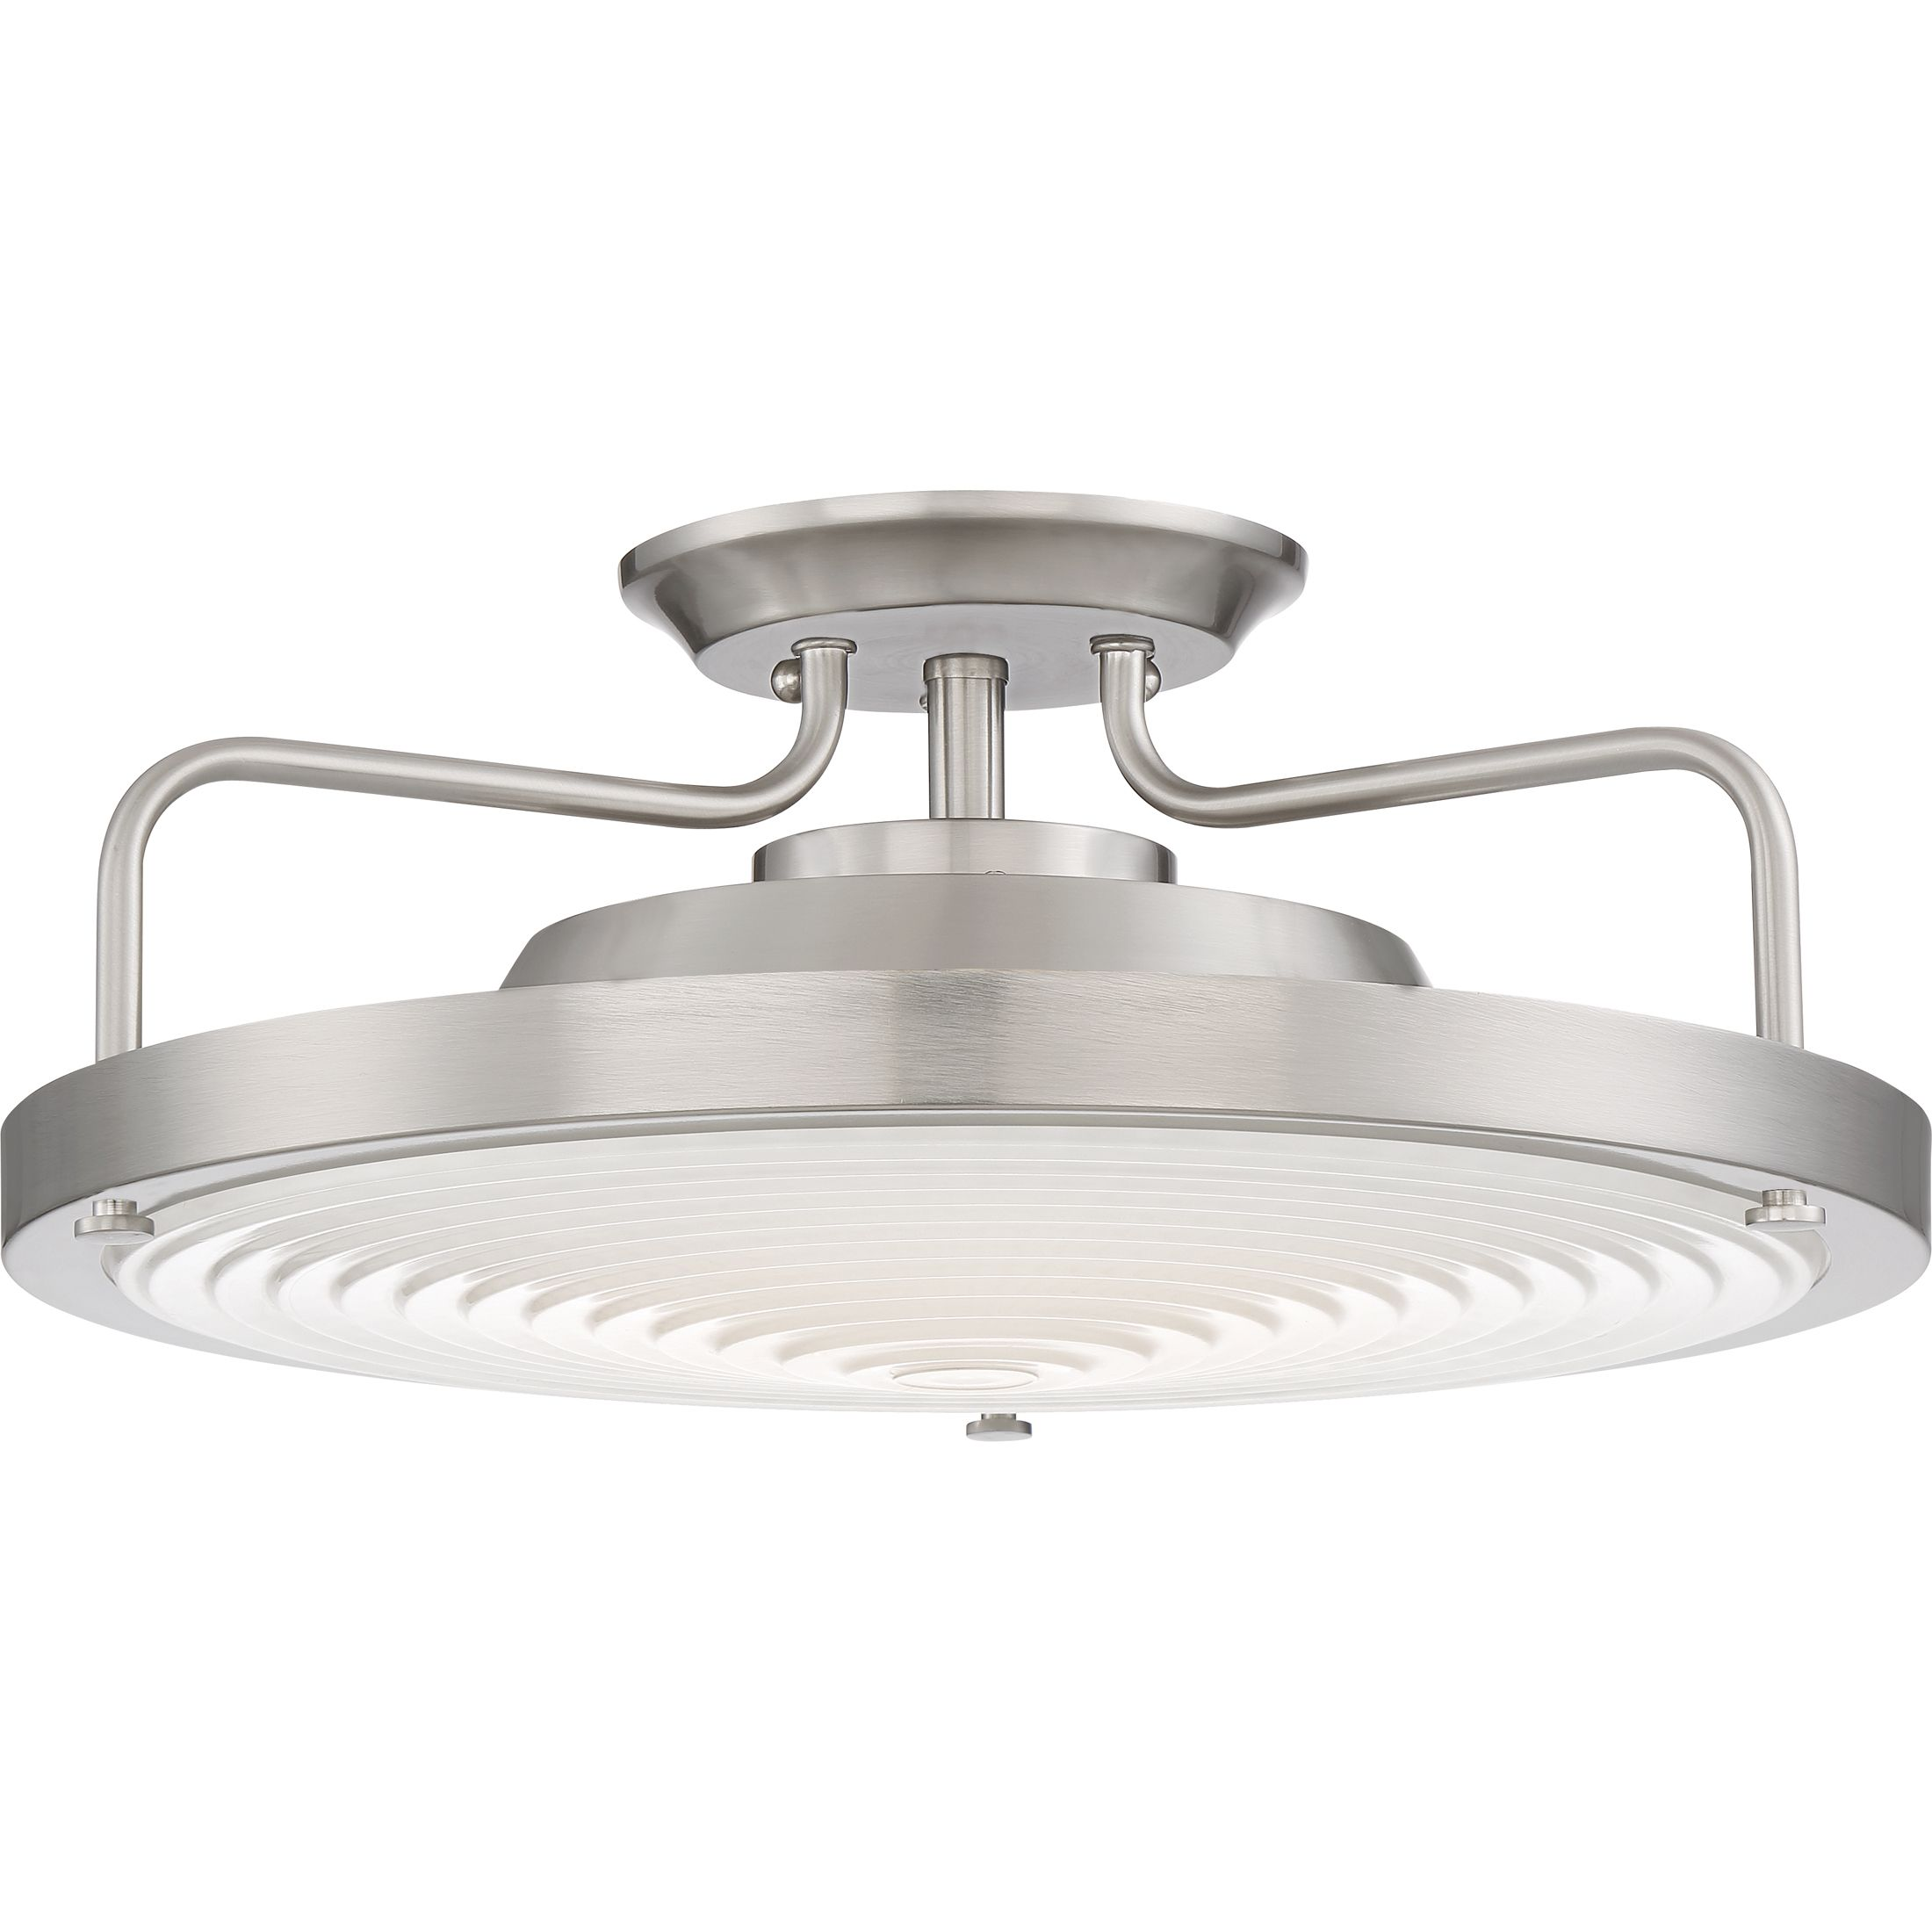 Quoizel Fixture Semi Flush Mount At Lowe S Canada Find Our Selection Of Ceiling Lights The T Guaranteed With Match